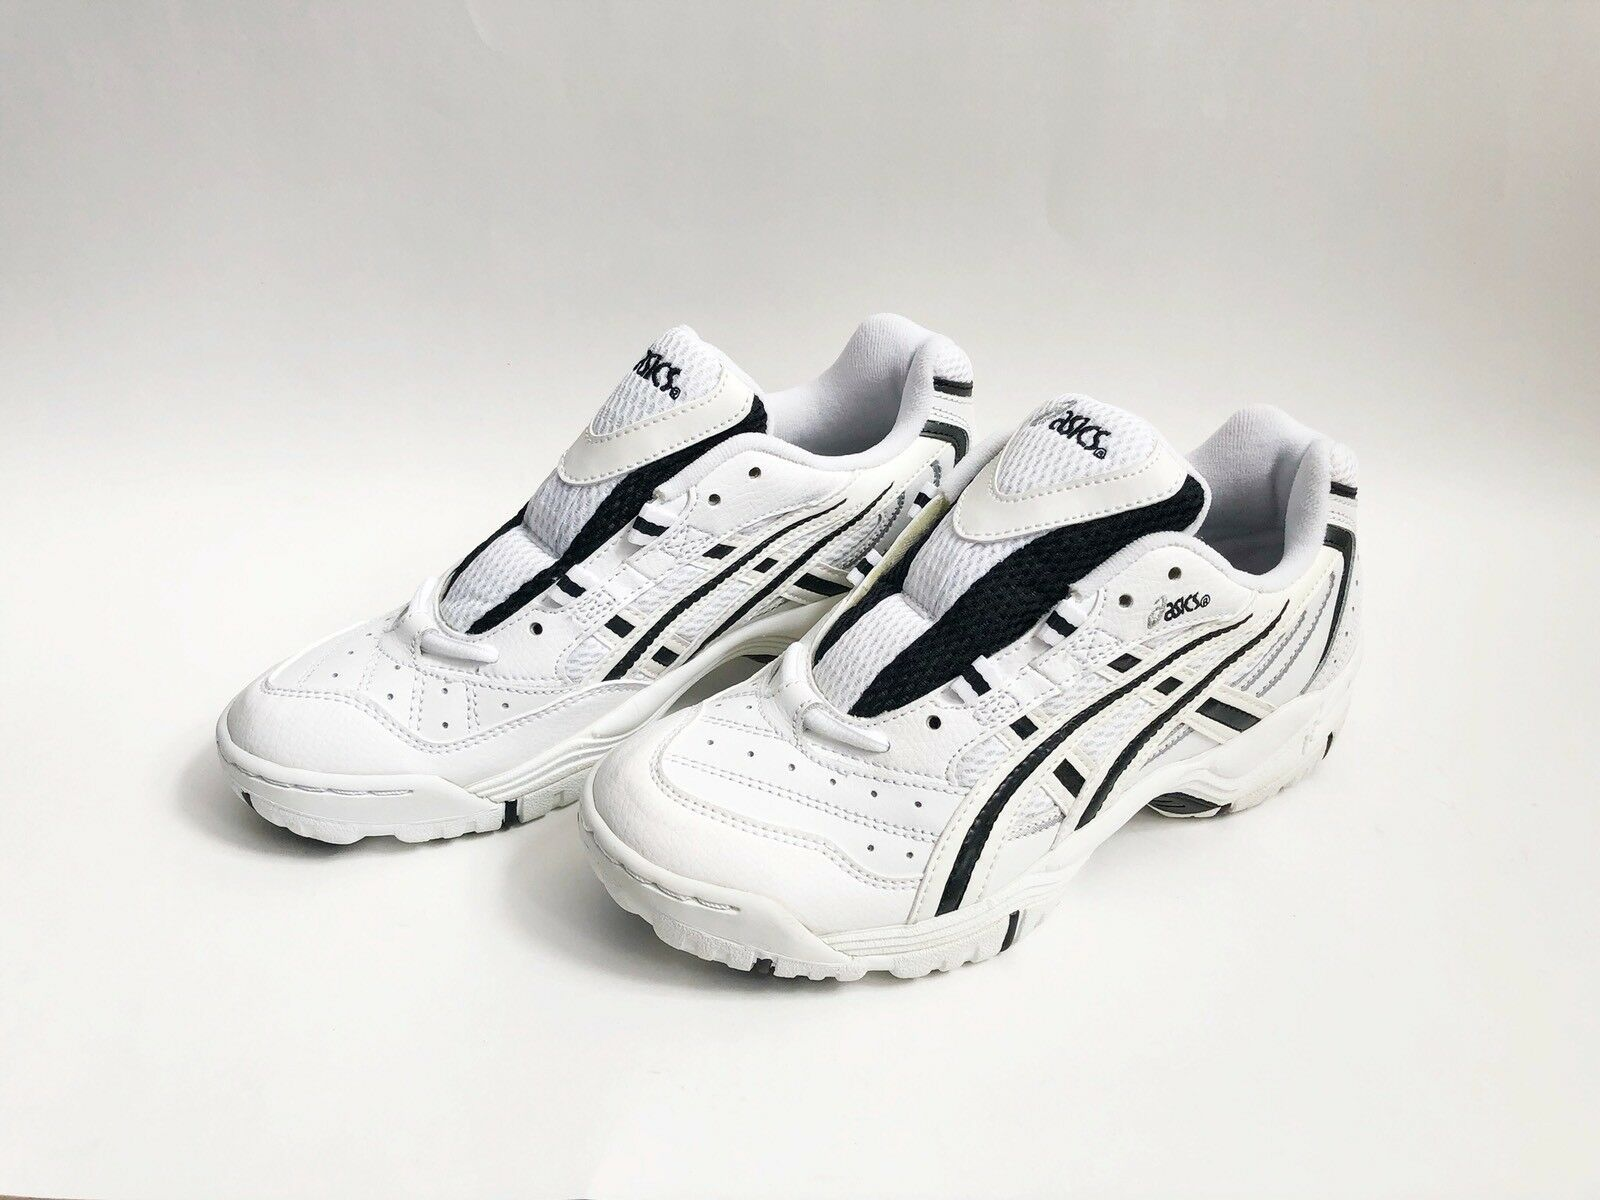 Vintage Asics Gel-Rally Point Volleyball Shoes Womens Sz. 9.5 deadstock NIB 2001 Seasonal price cuts, discount benefits